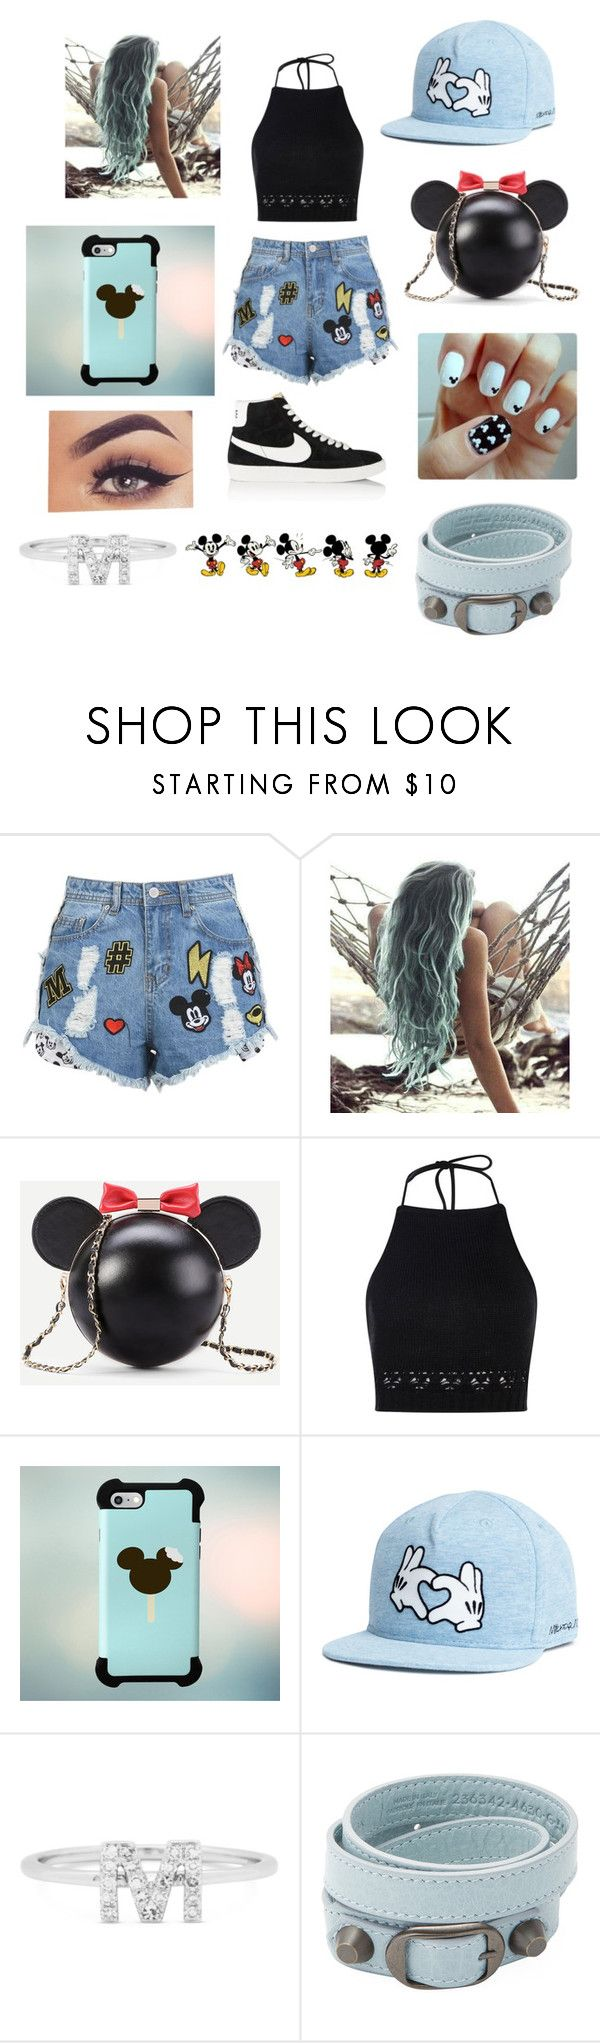 """Summer Loven#26(Mickey)"" by taco-lambert ❤ liked on Polyvore featuring Boohoo, Samsung, Plukka, Balenciaga and NIKE"